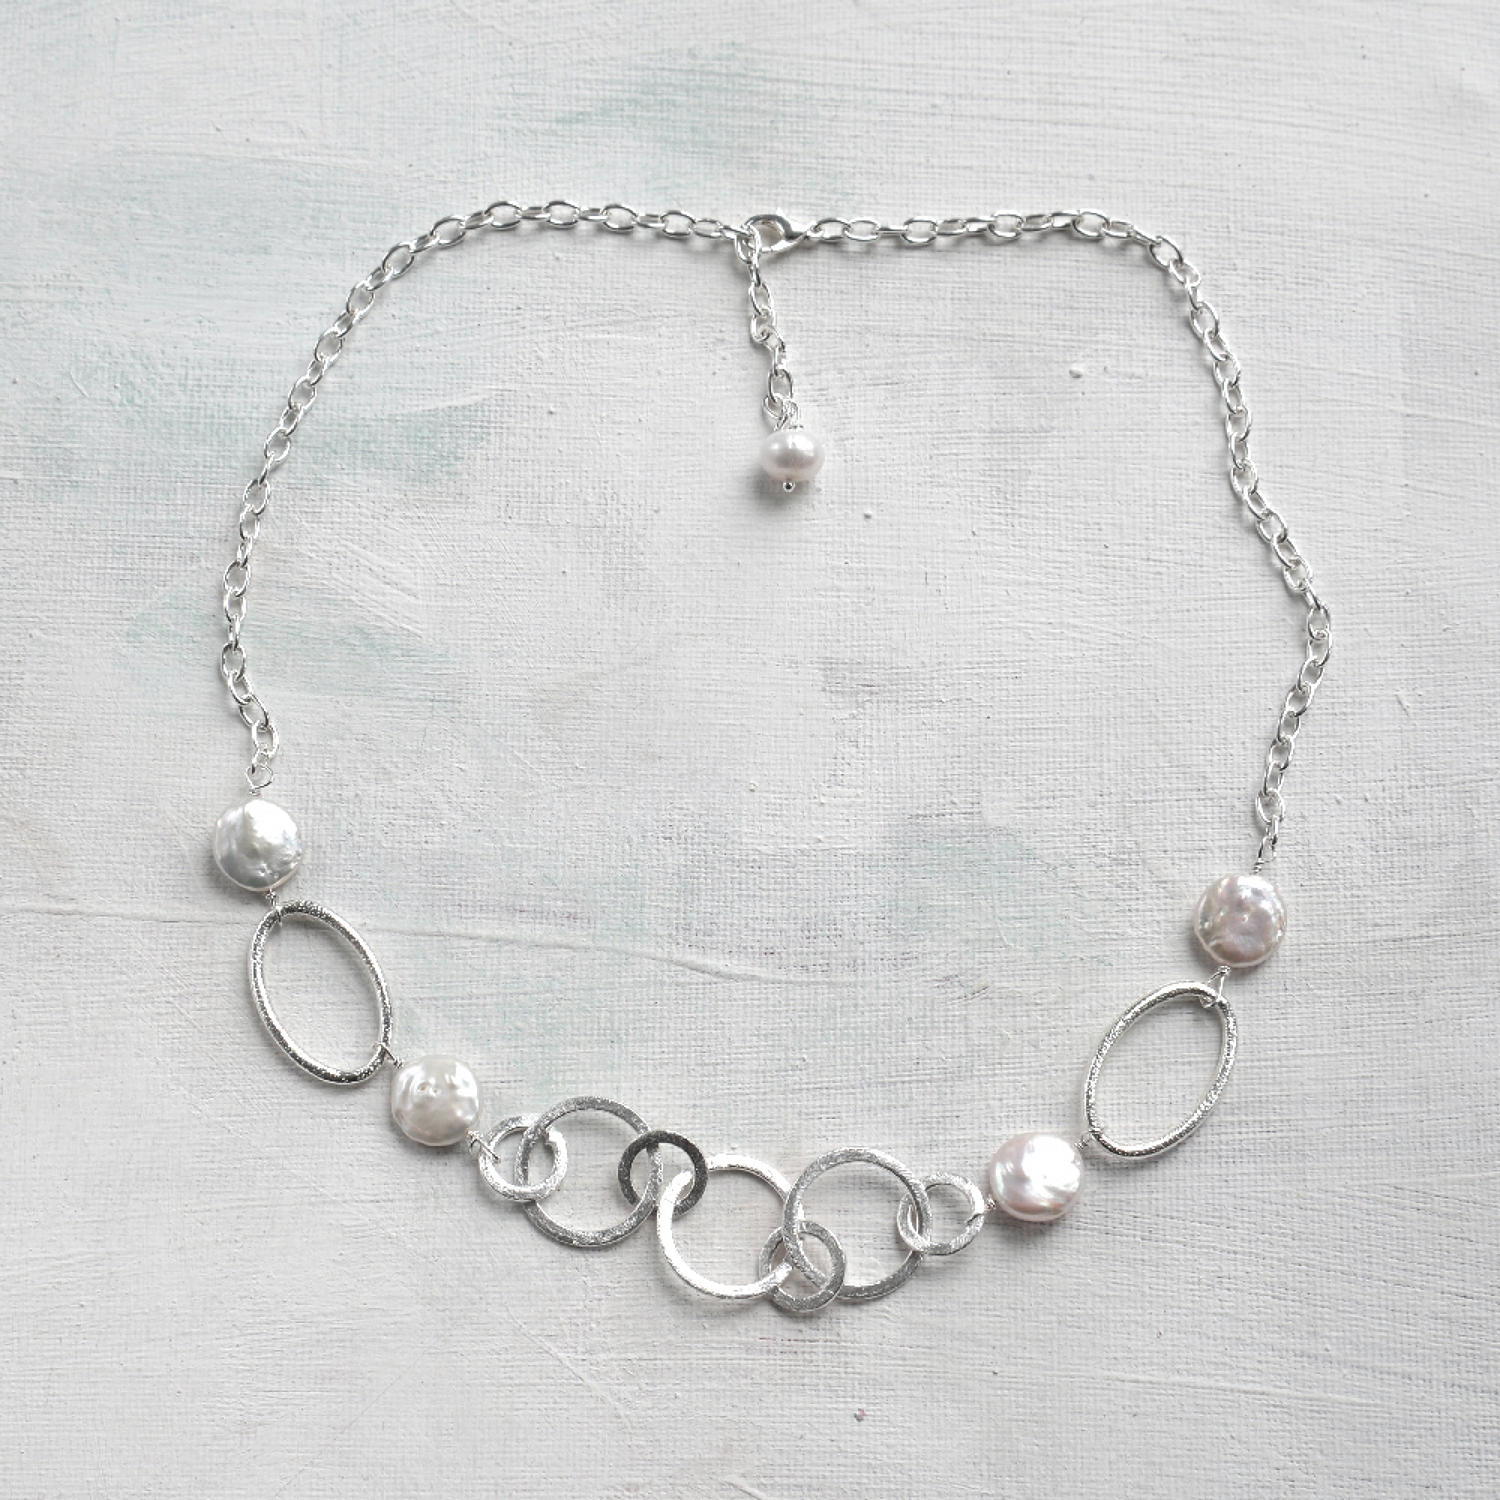 Polly necklace pearl silver